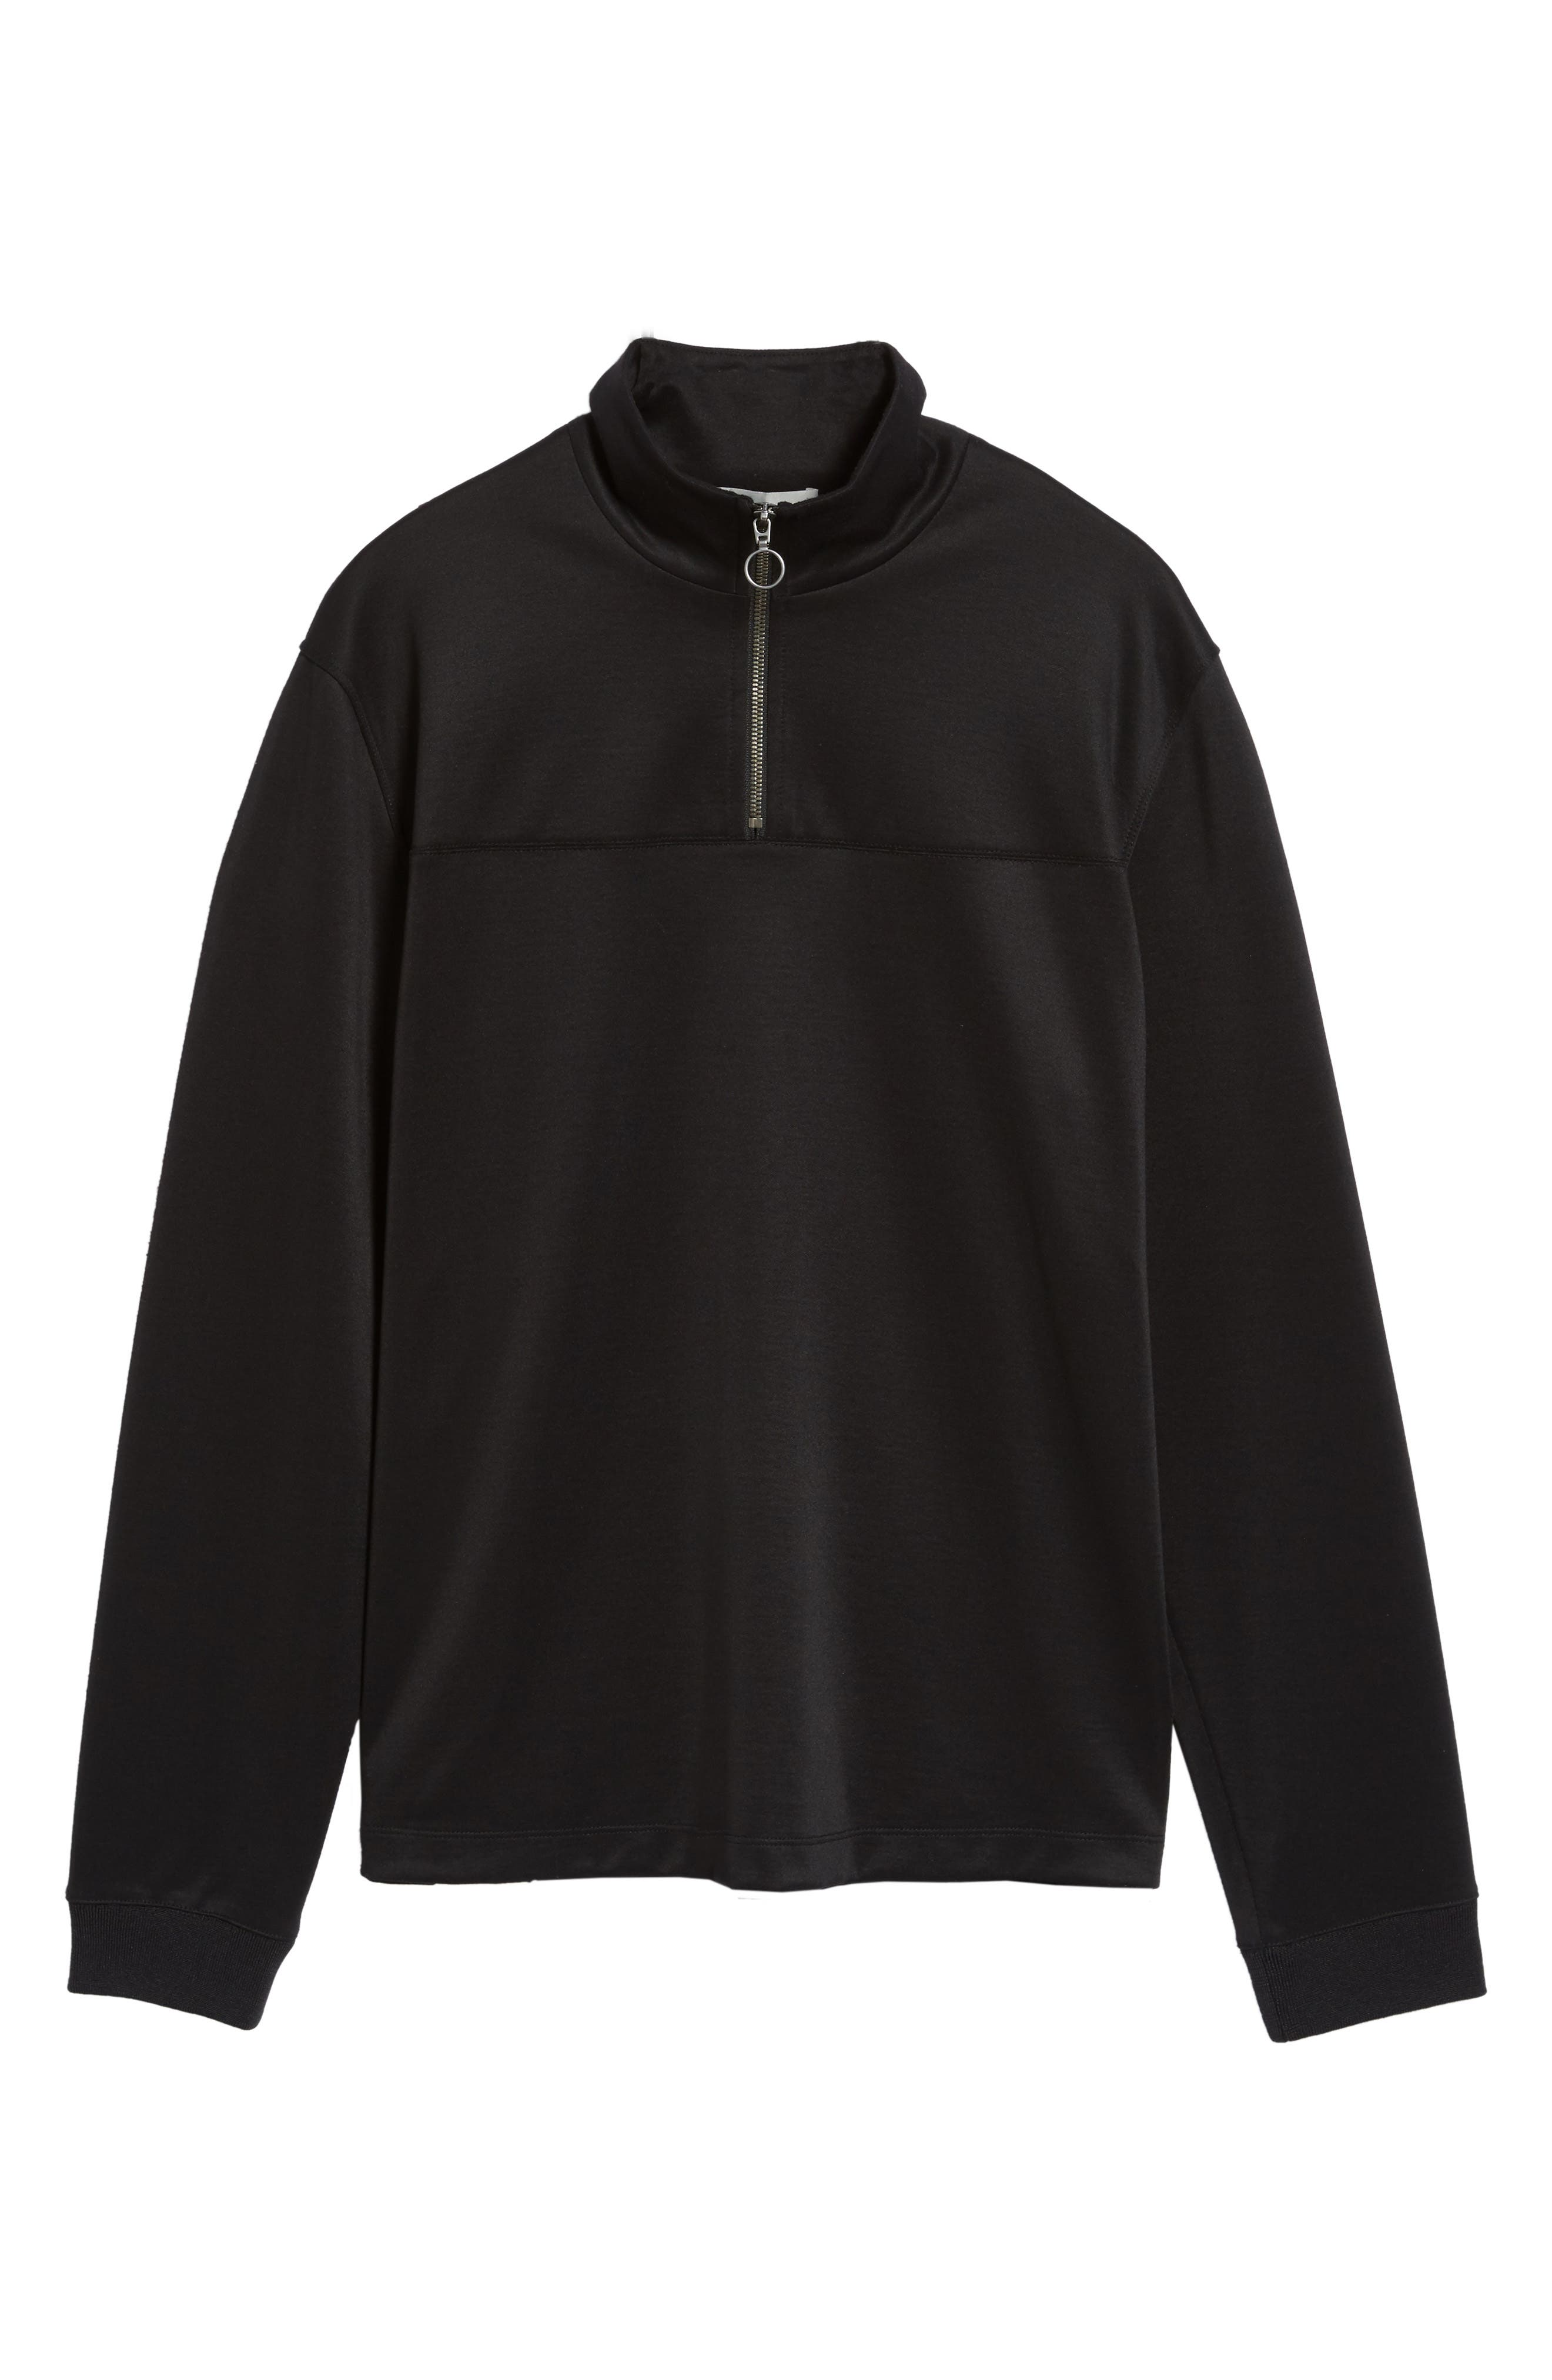 Quarter Zip Jacket,                             Alternate thumbnail 6, color,                             001